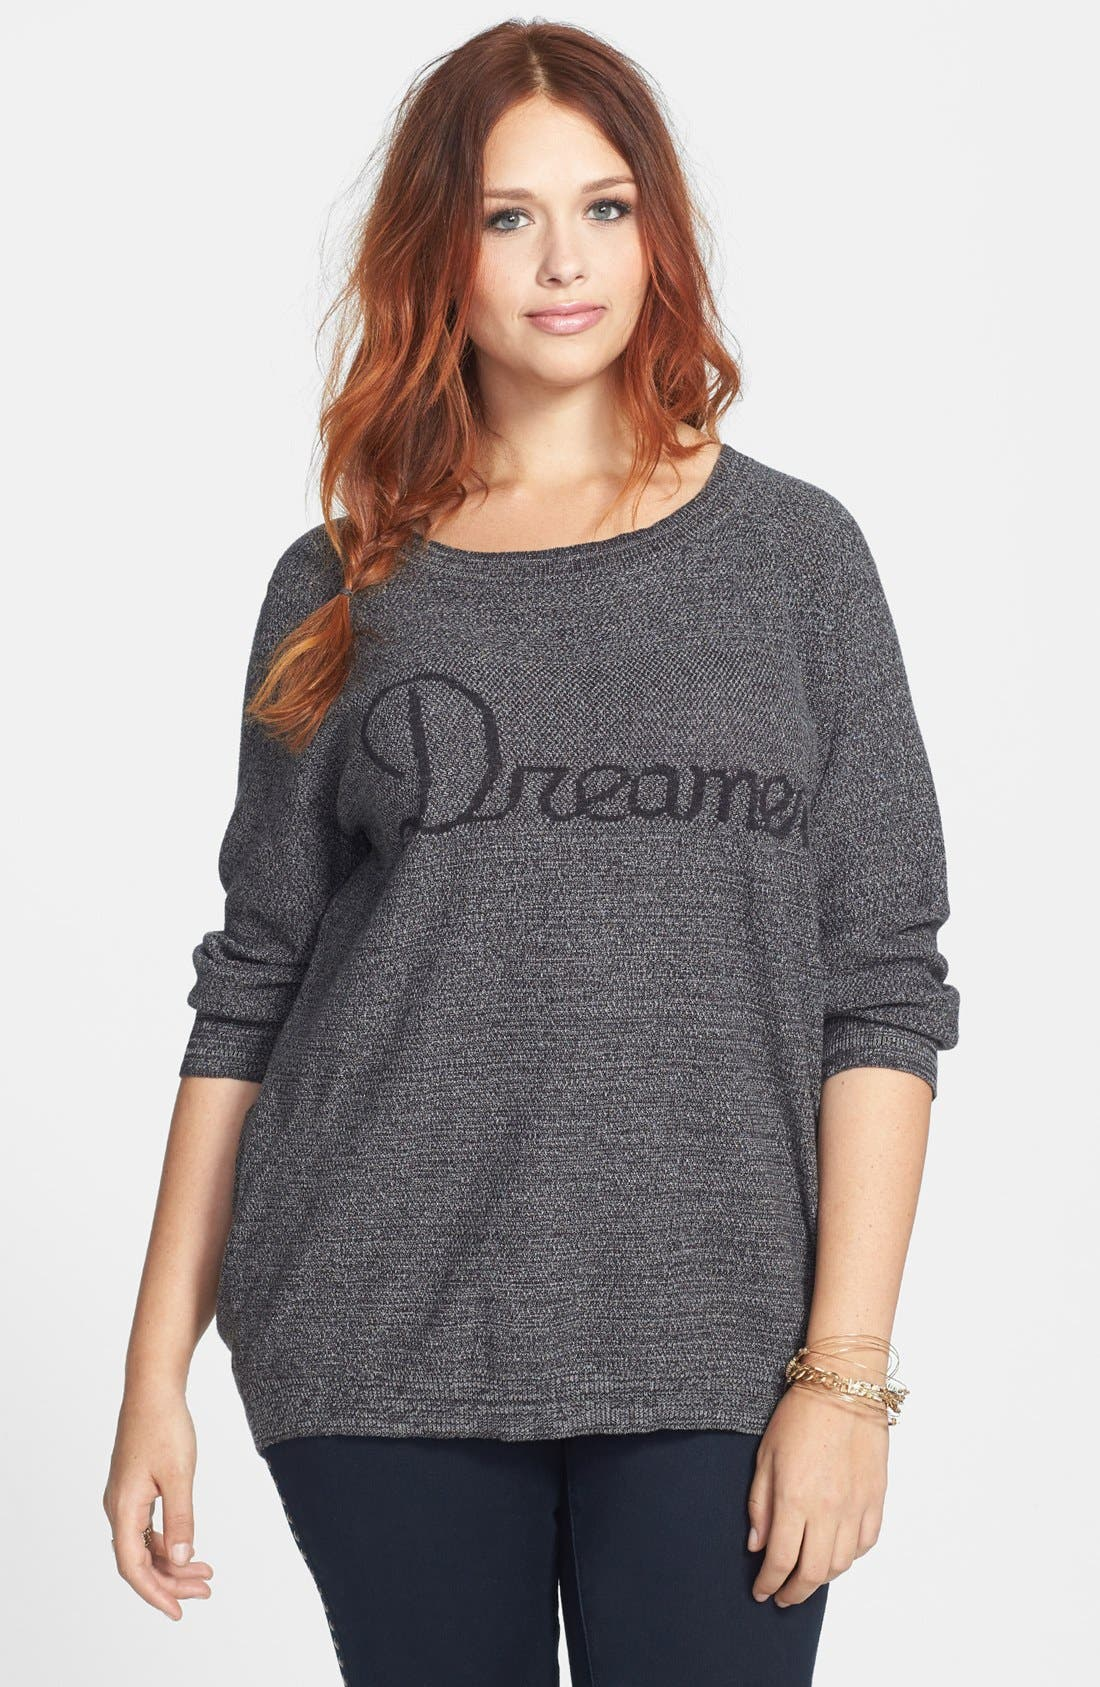 Alternate Image 1 Selected - Love by Design 'Dreamer' Cotton Sweater (Plus Size)